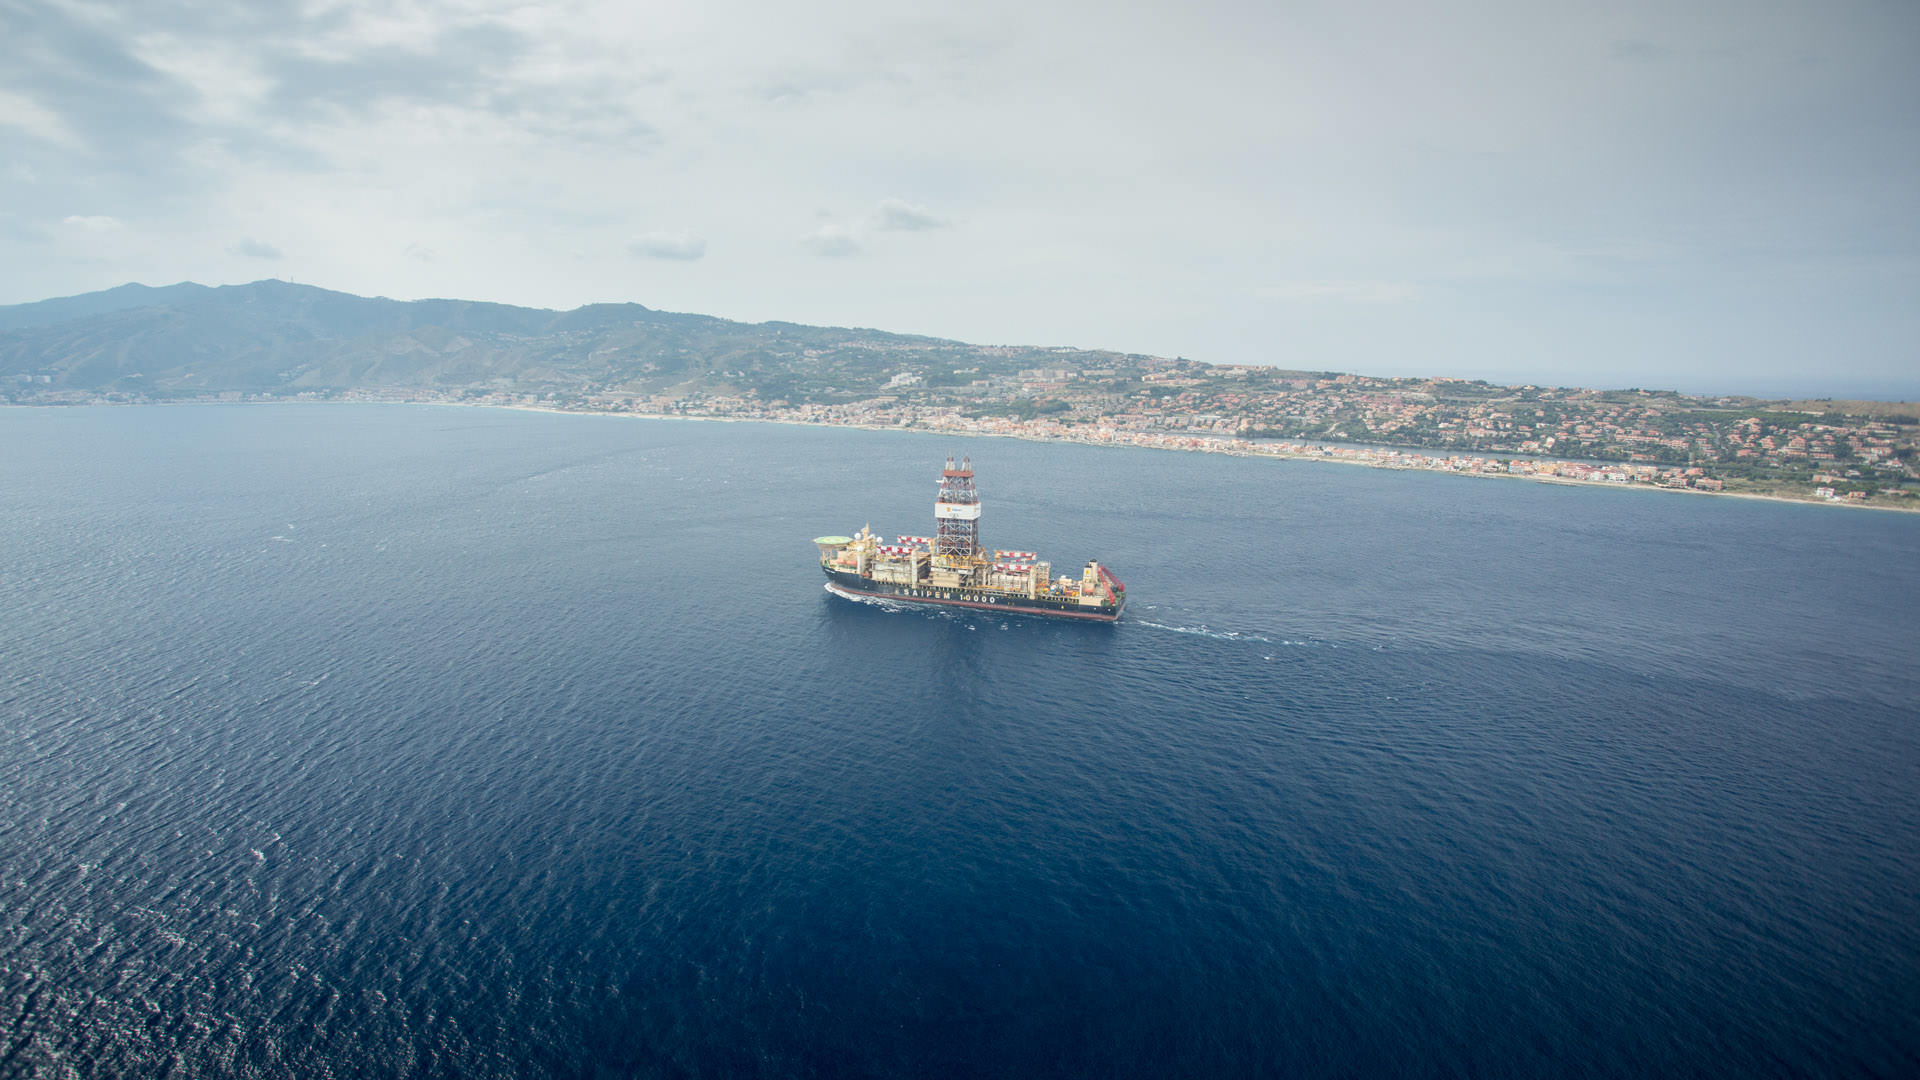 Saipem Stretto di Messina 03